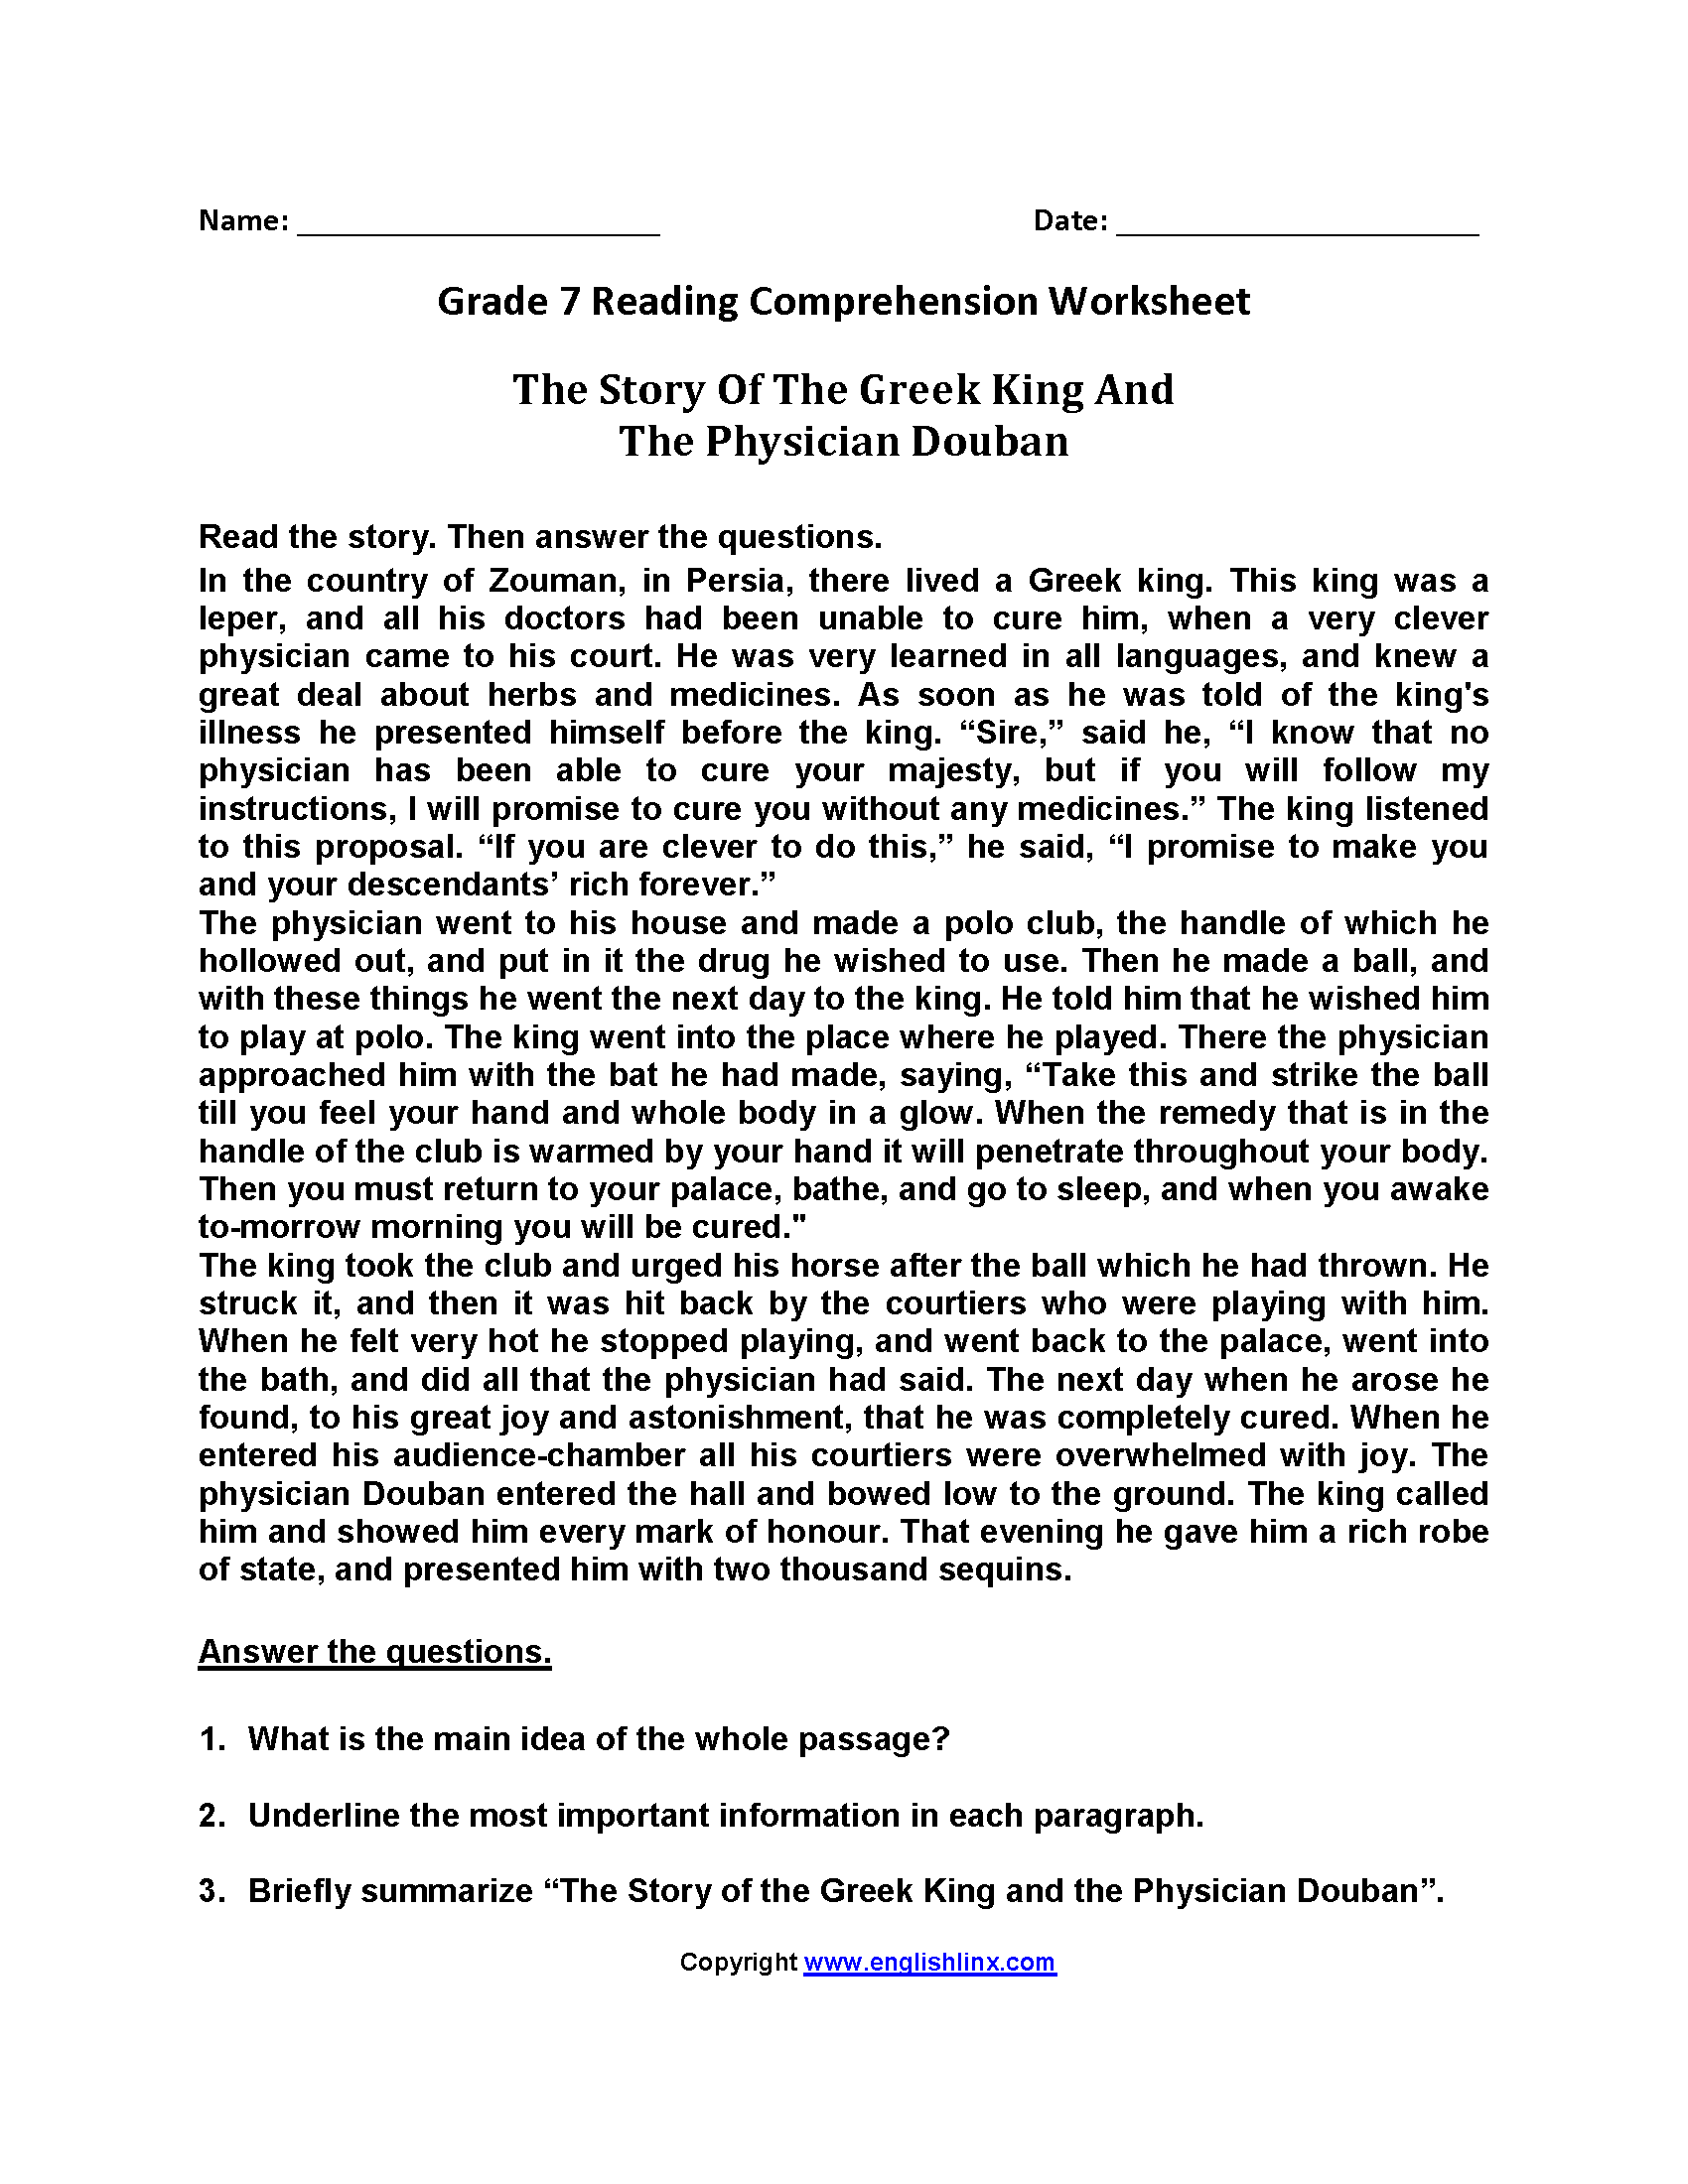 hight resolution of 20 Best Reading Comprehension Worksheets Printable 7th Grade images on Best  Worksheets Collection